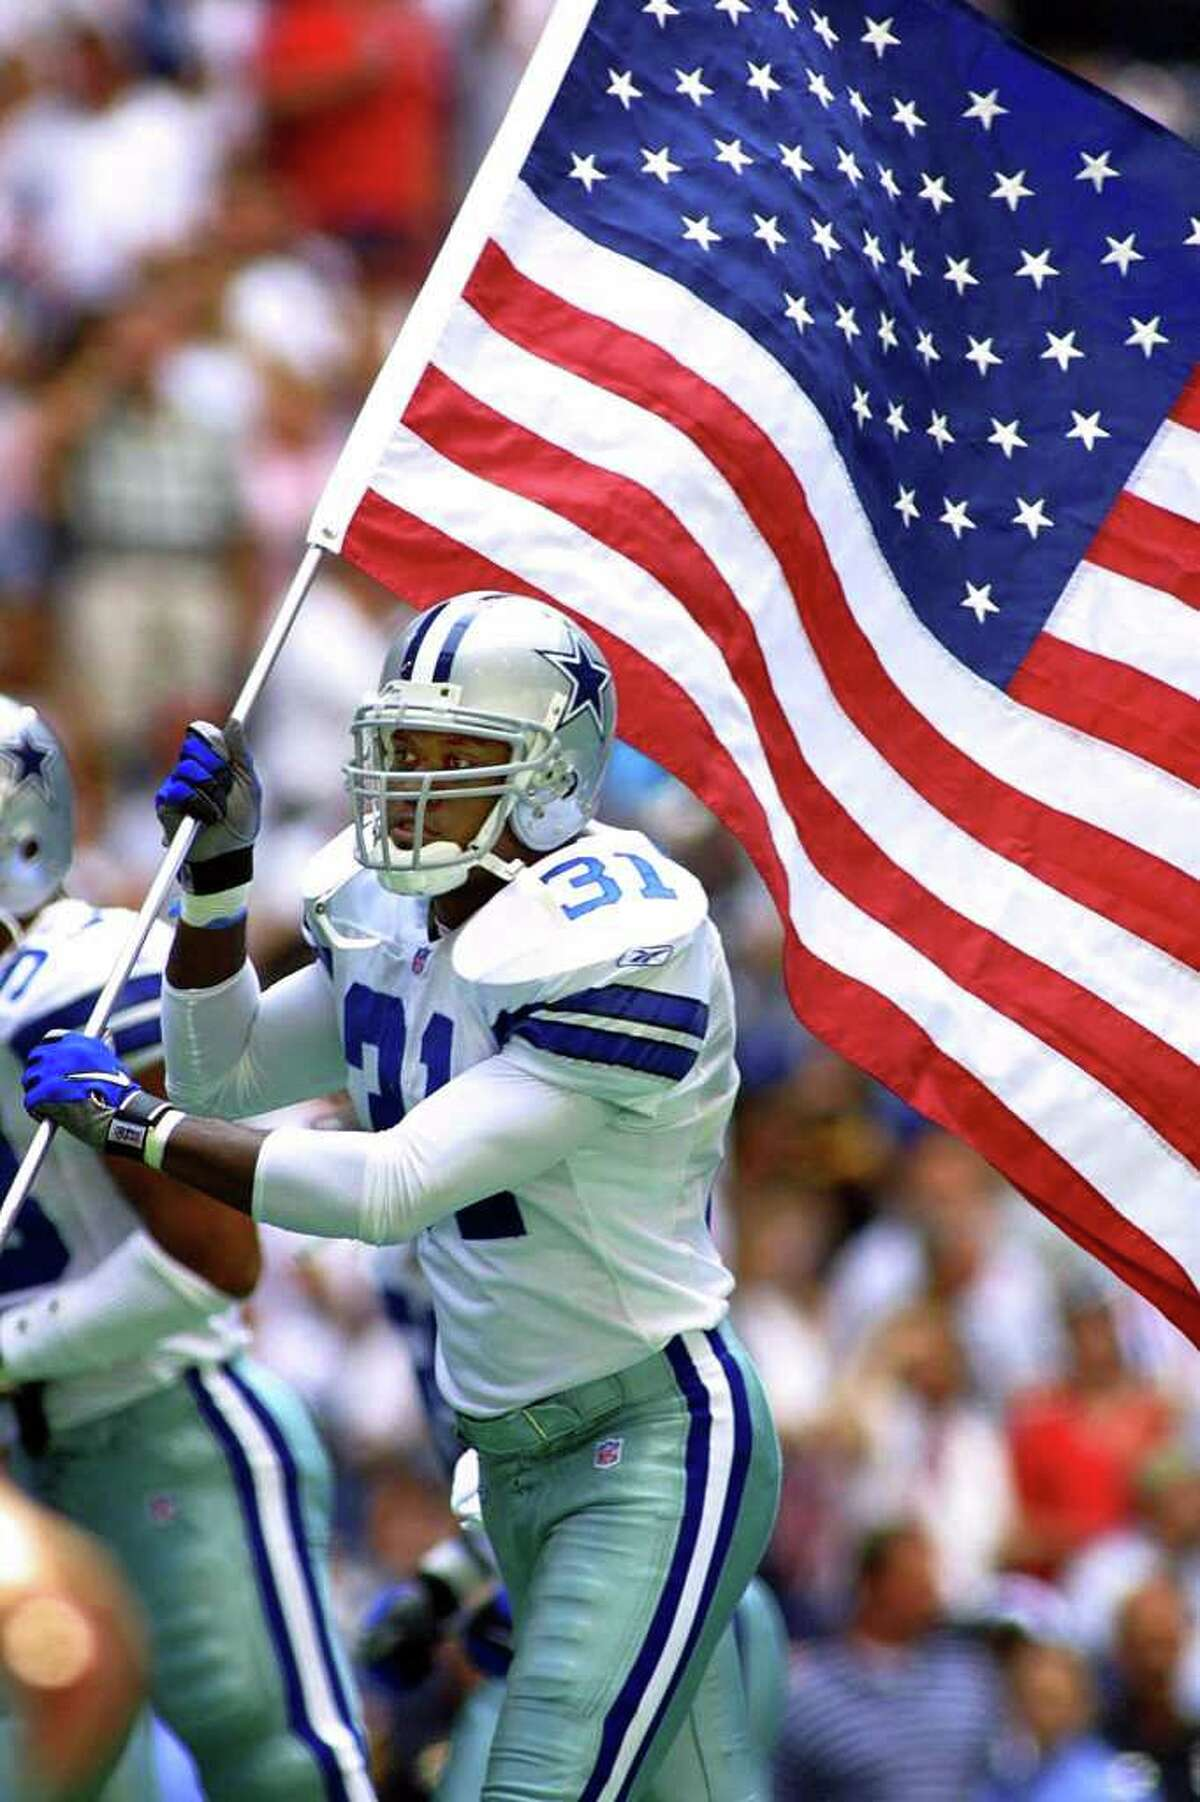 Cowboys safety George Teague takes the field Sept. 23, 2001, after the NFL postponed play for a week.